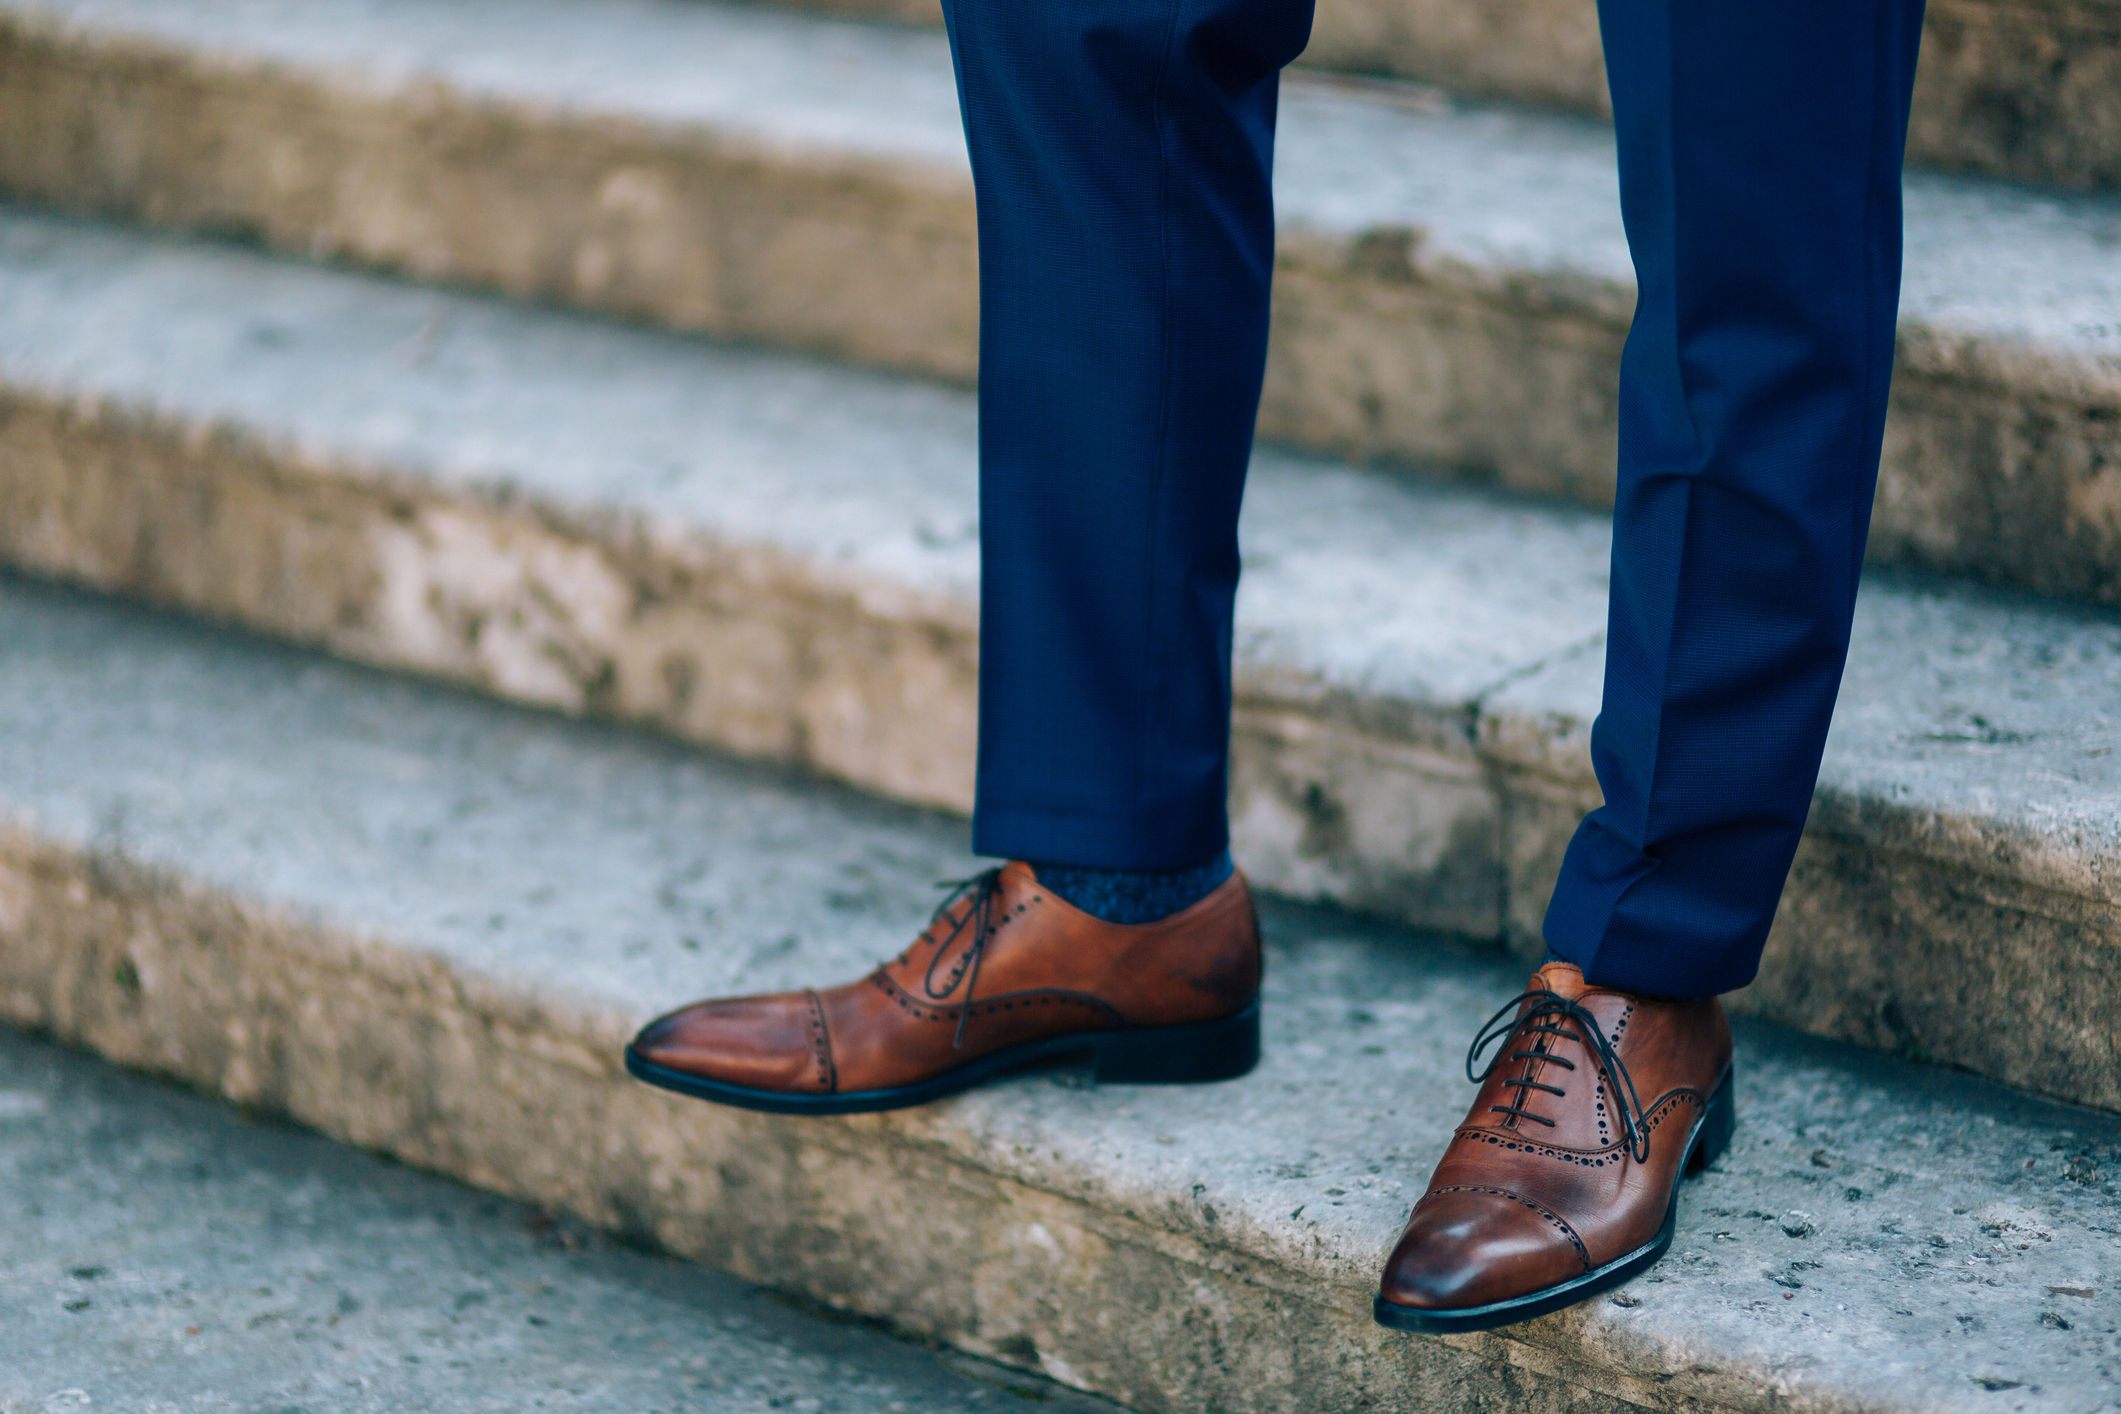 match your shoes to your suit